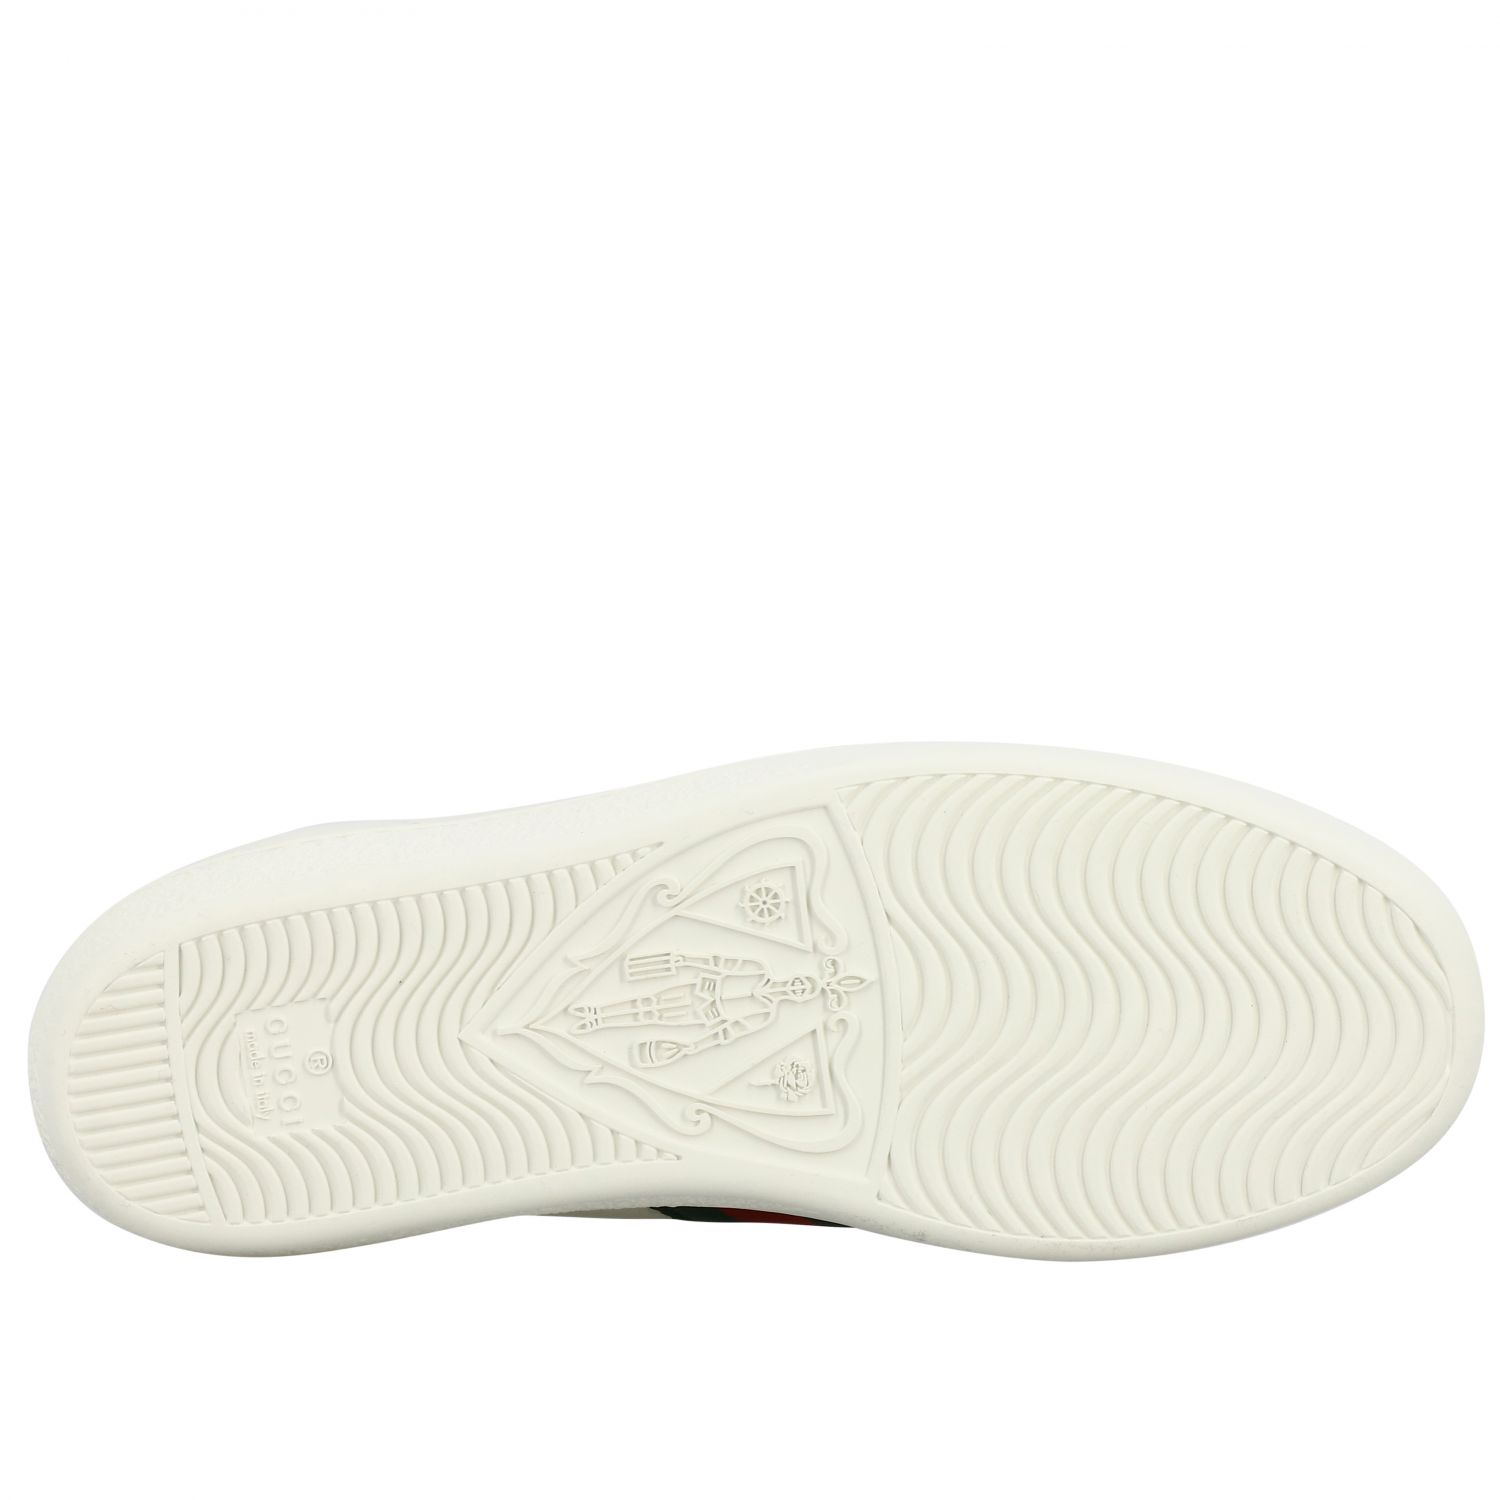 Sneakers New Ace Gucci in pelle con fasce Web bianco 6